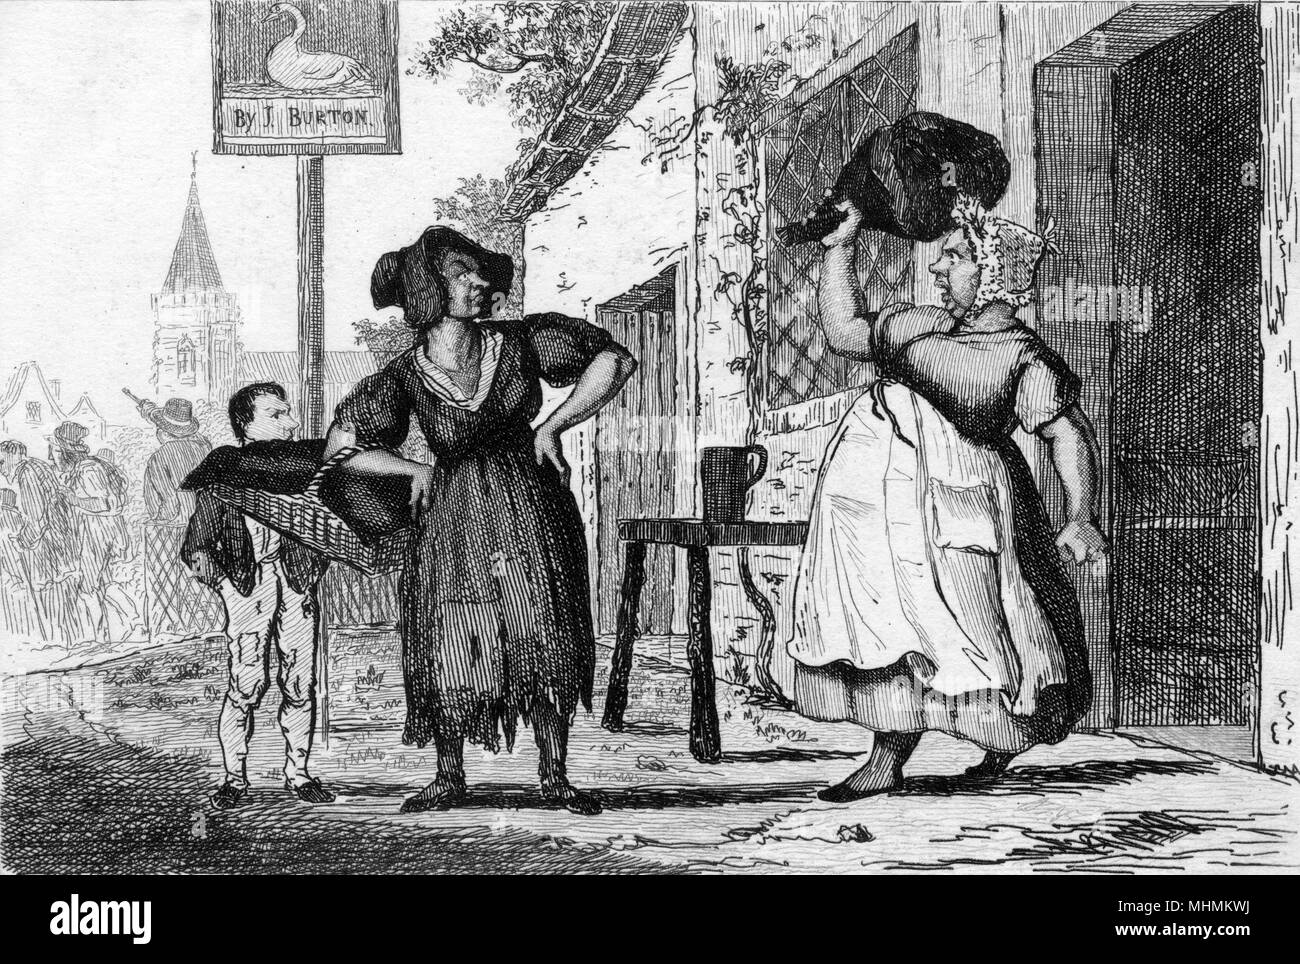 Ladies at an entrance to a hostelry, one brandishing a large ham...       Date: 1836 - Stock Image